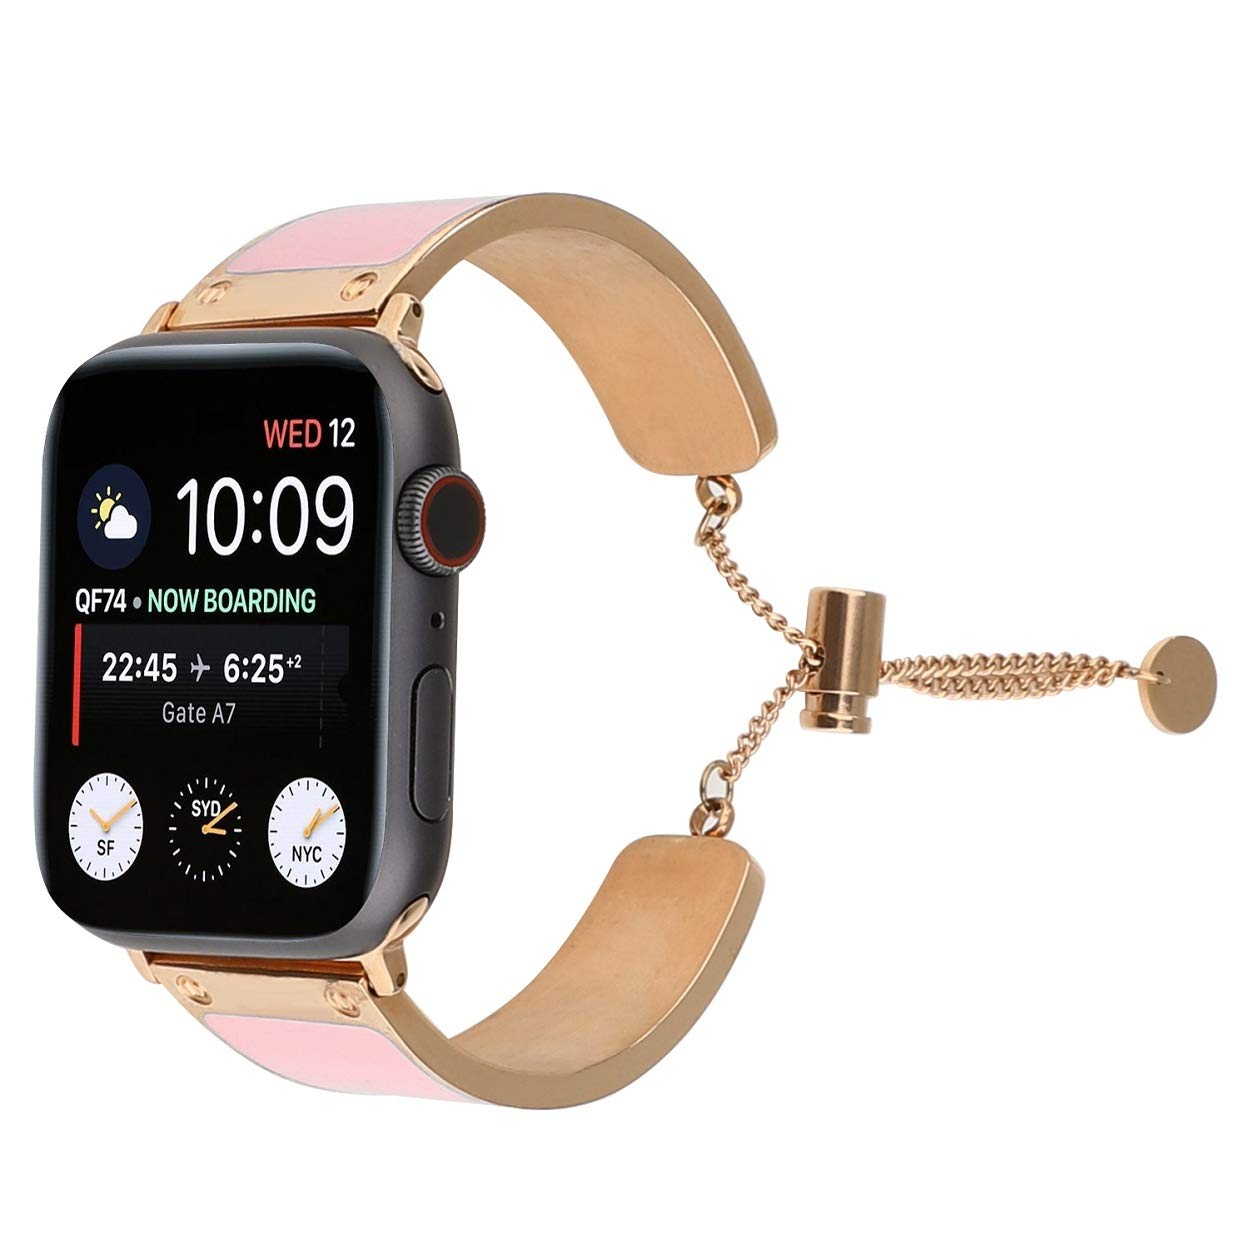 Juzzhou Compatible with Watch Band Apple Watch iWatch Series 1 2 3 4 Wriststrap Wrist Strap Guard Replacement Wristband Bracelet with Metal Adapter Buckle for Woman Girls Lady Boy Pink 38mm 40mm